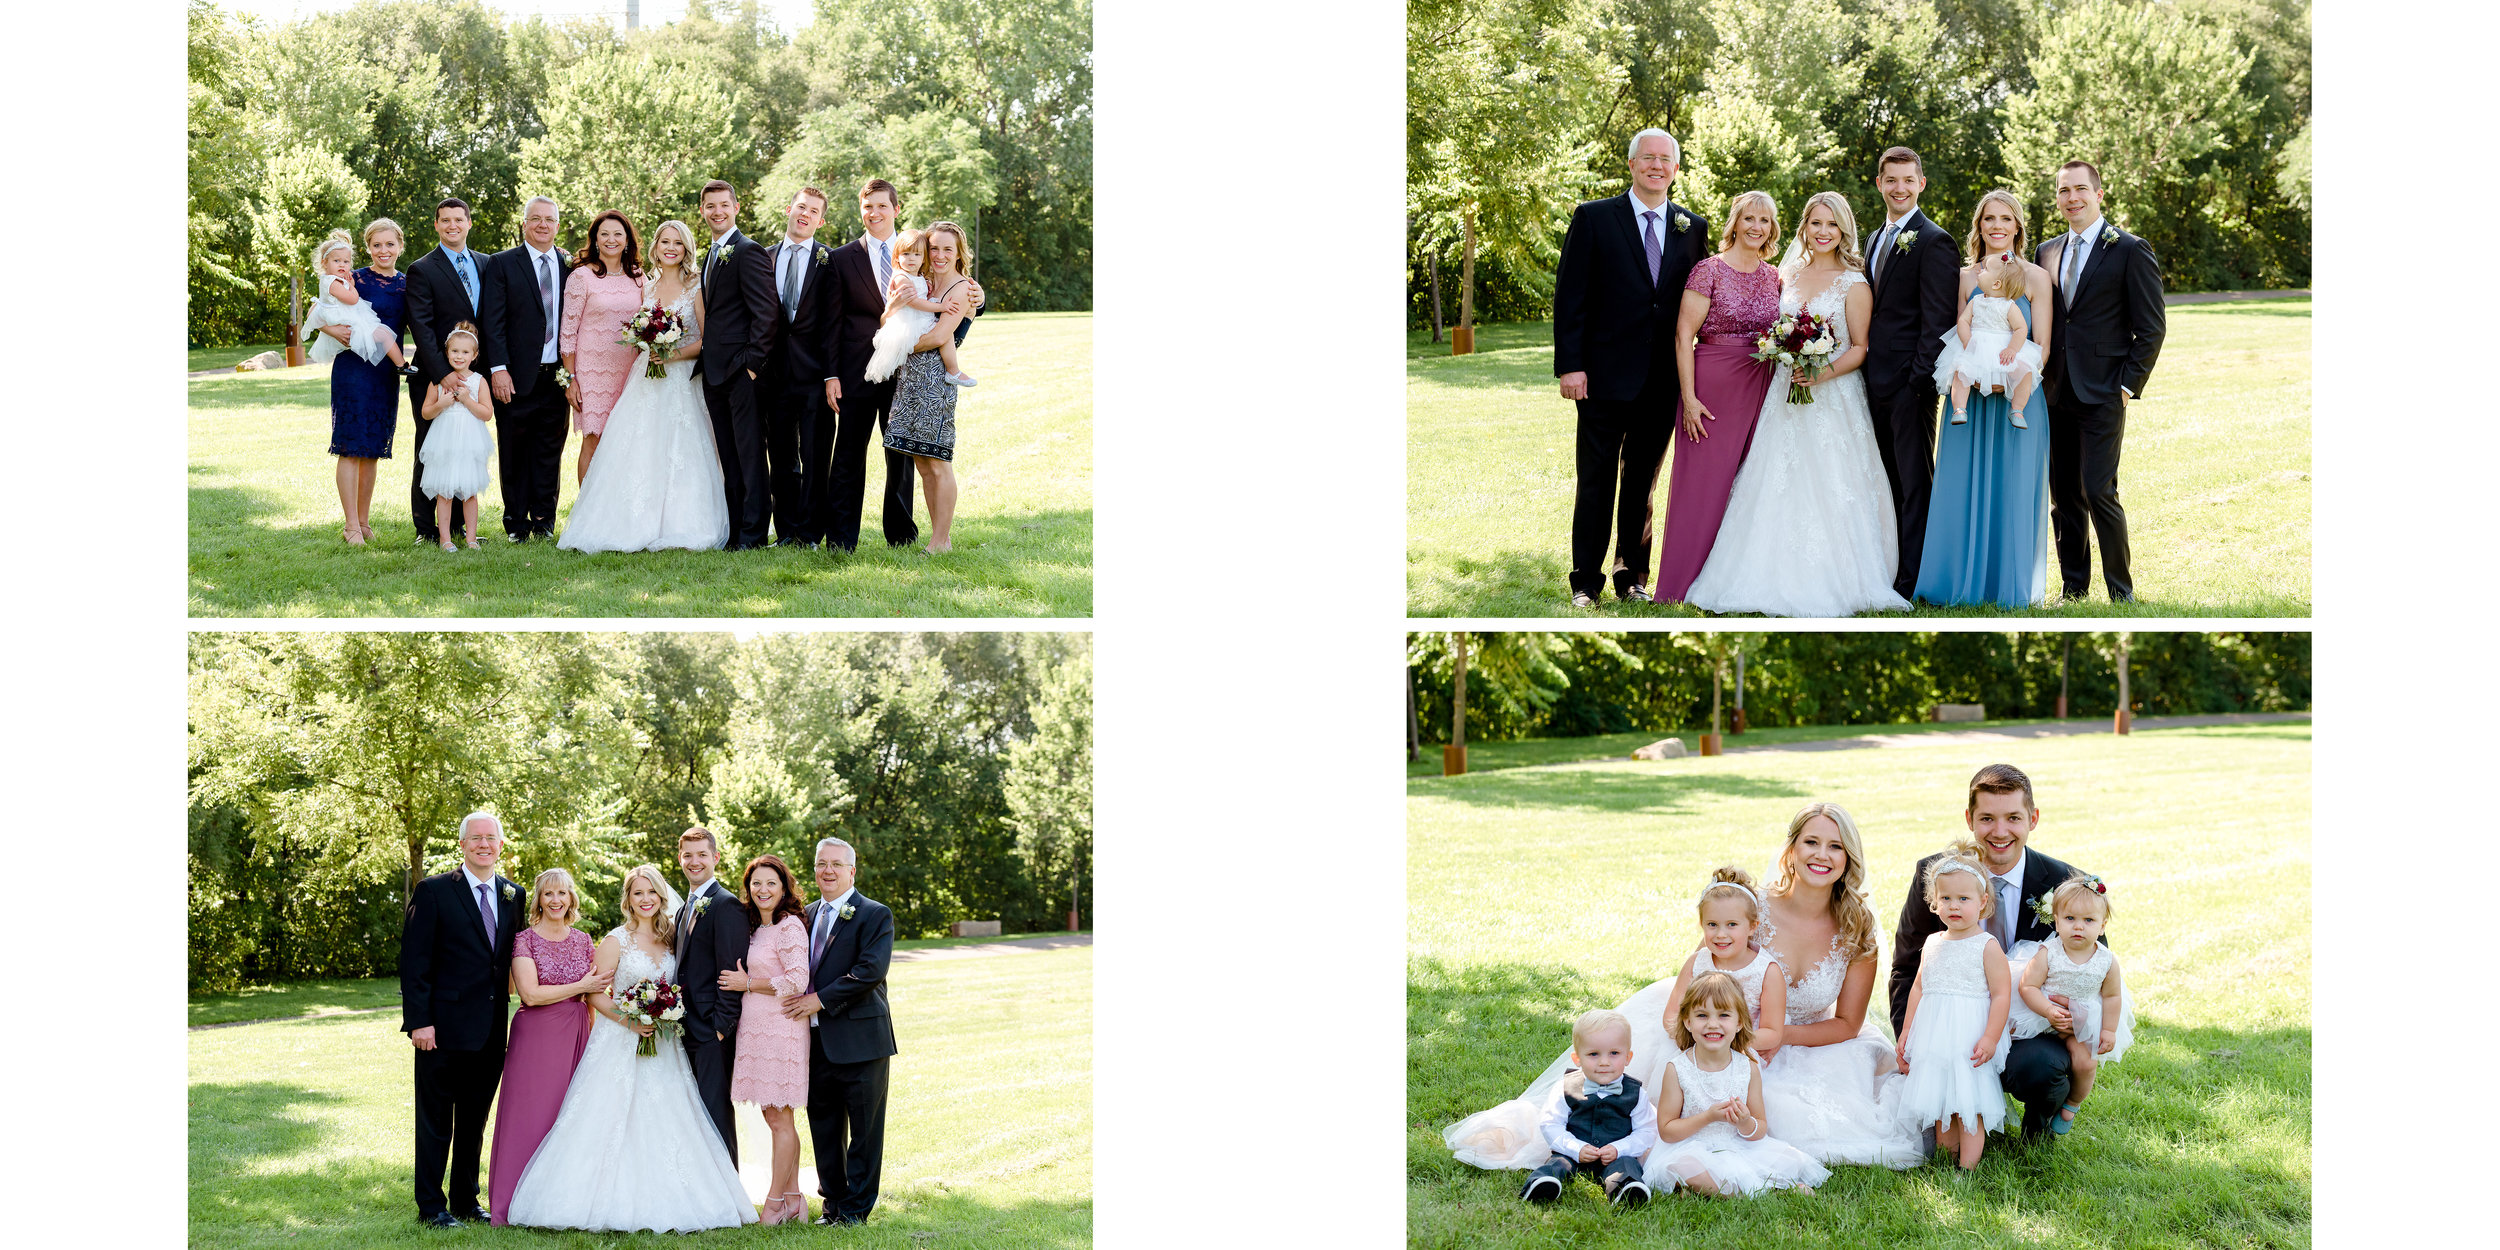 Kristen + Eric - Wedding Album Sample_17.jpg